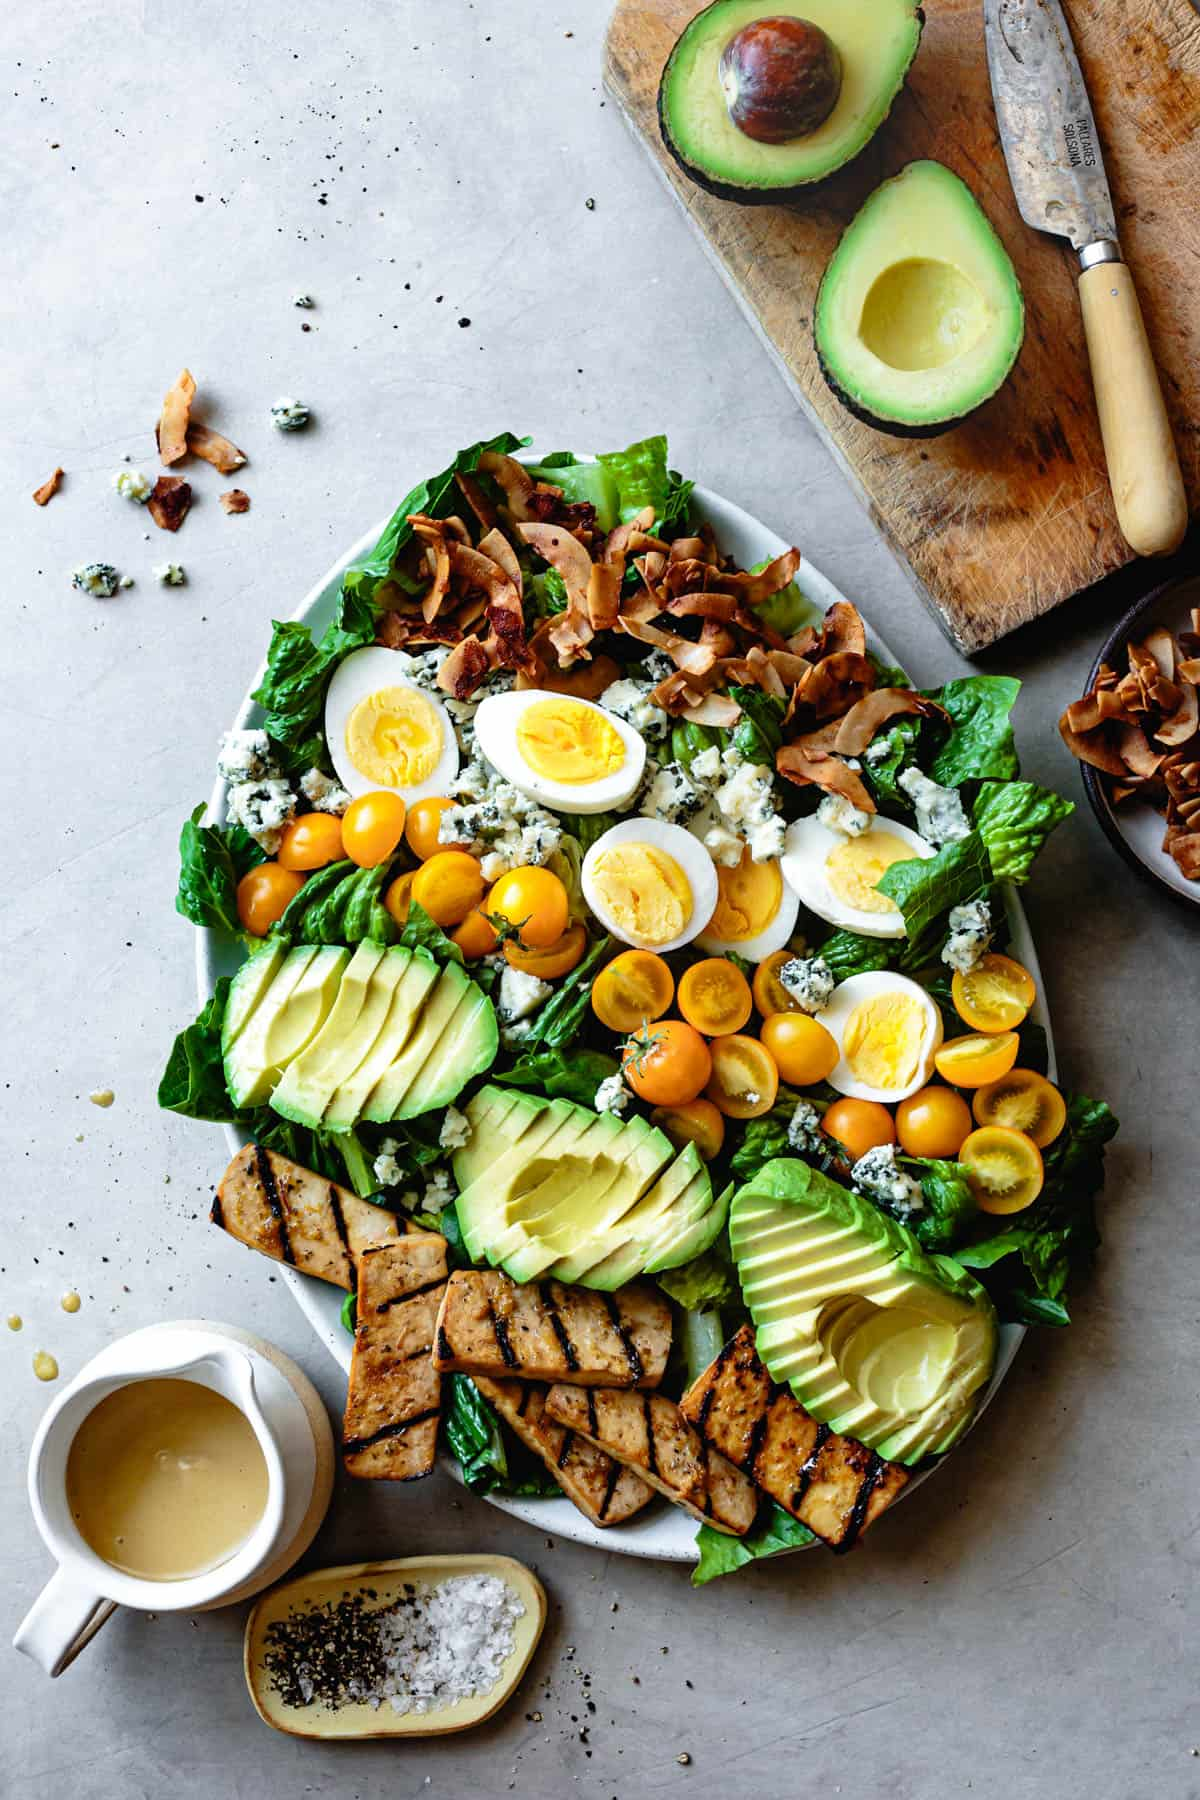 Vegetarian Cobb Salad with Grilled Tofu & Coconut Bacon and avocados